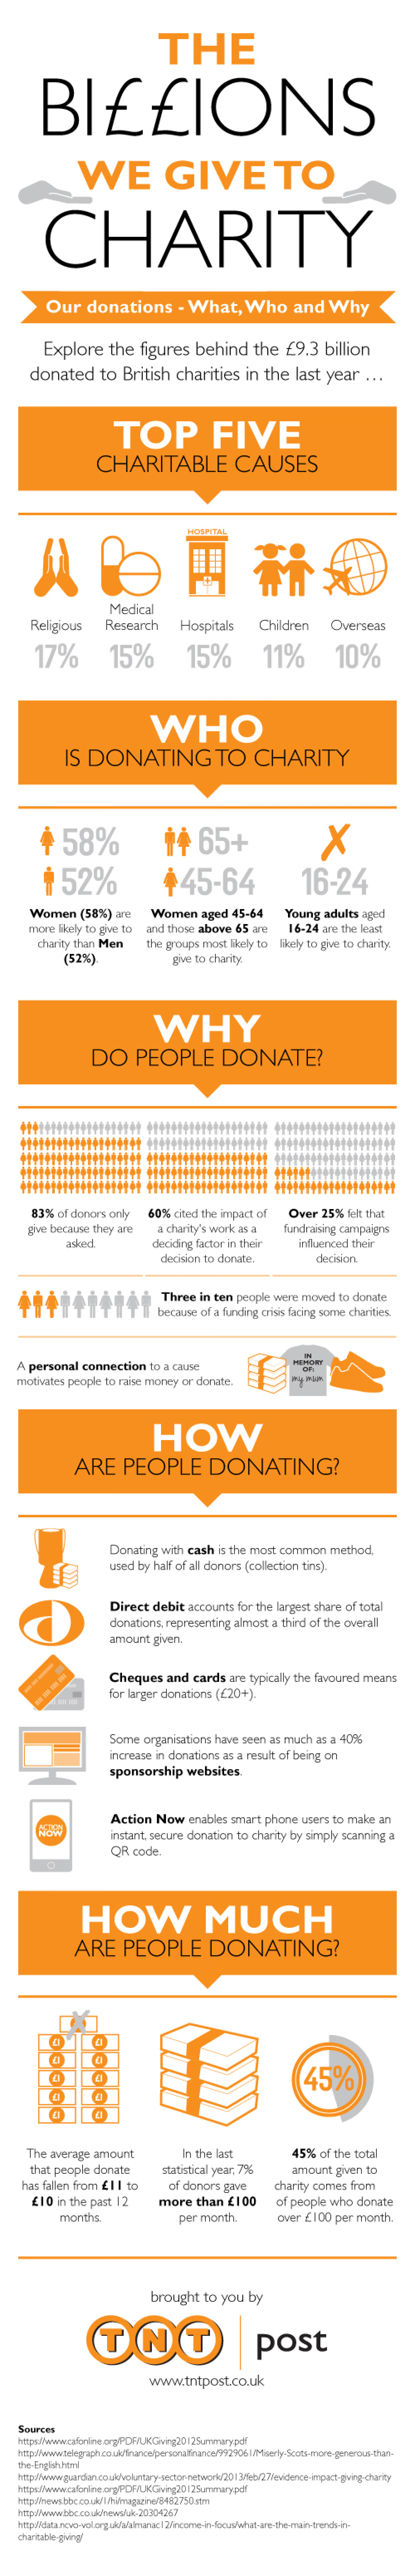 Our Donations to Charity. What, Who and Why?  Infographic